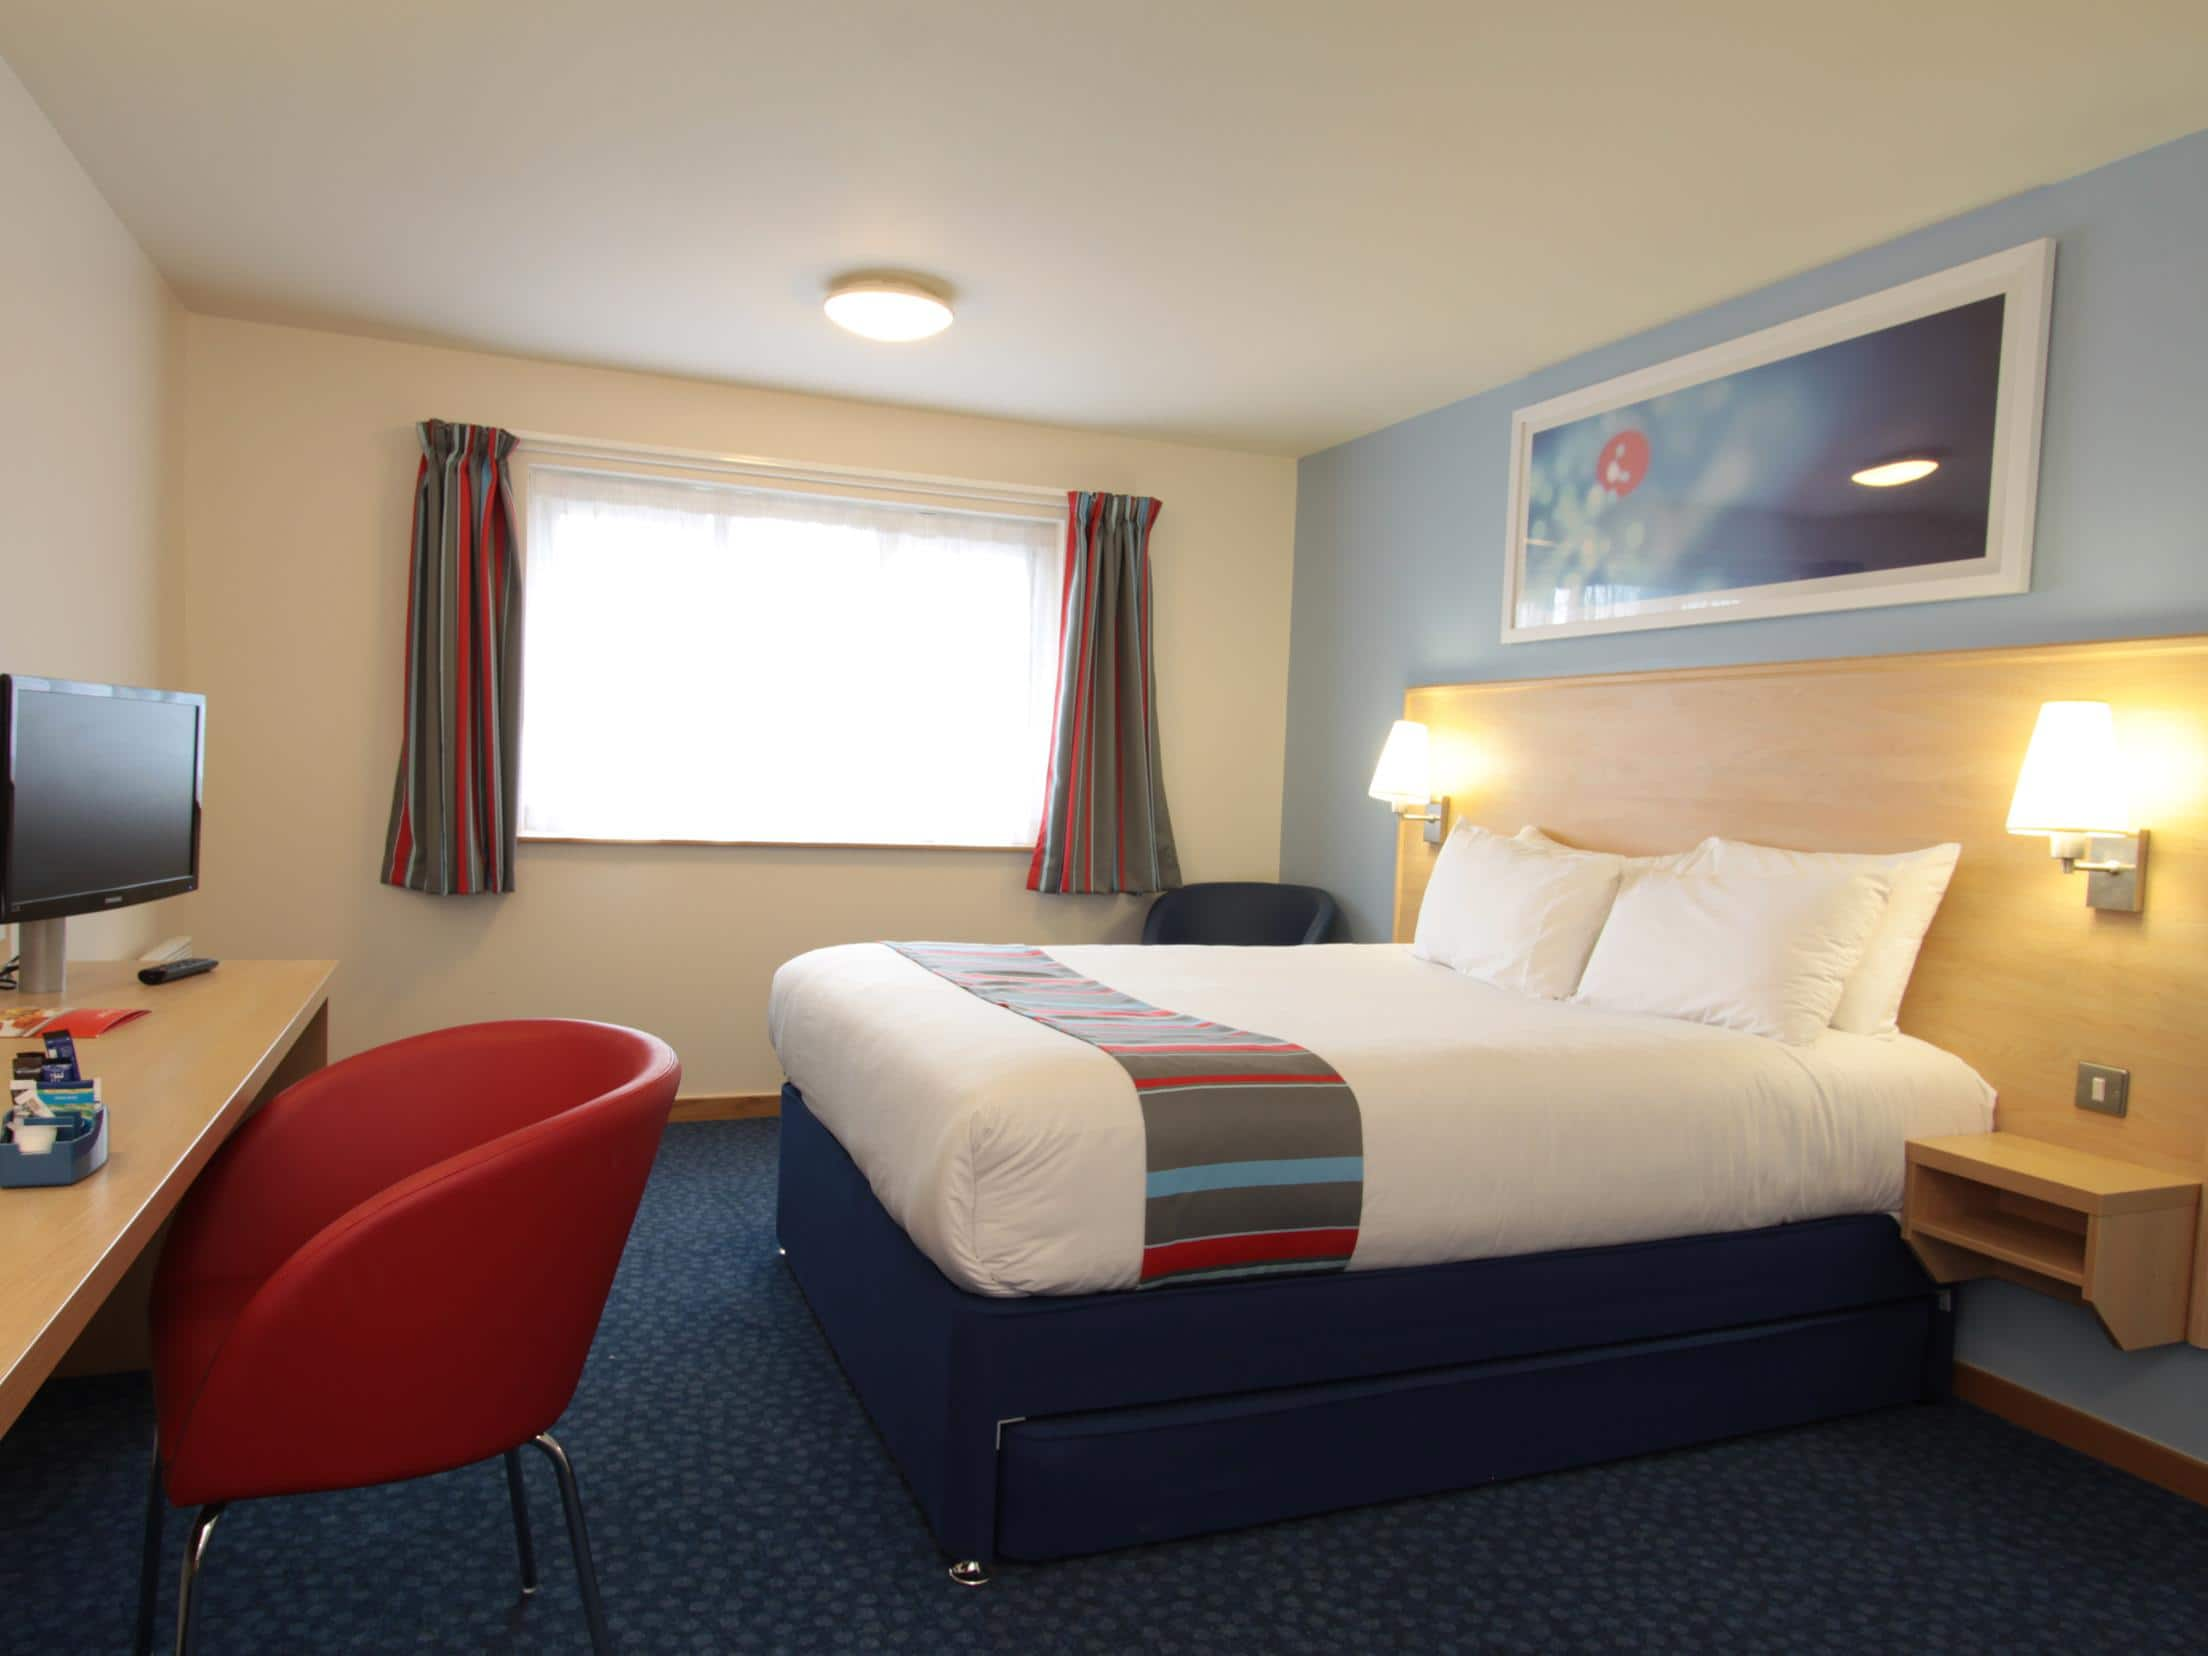 Hotel london cheap internet rates for kings cross hotels in london - London Central Kings Cross Restaurant And Bar Double Room